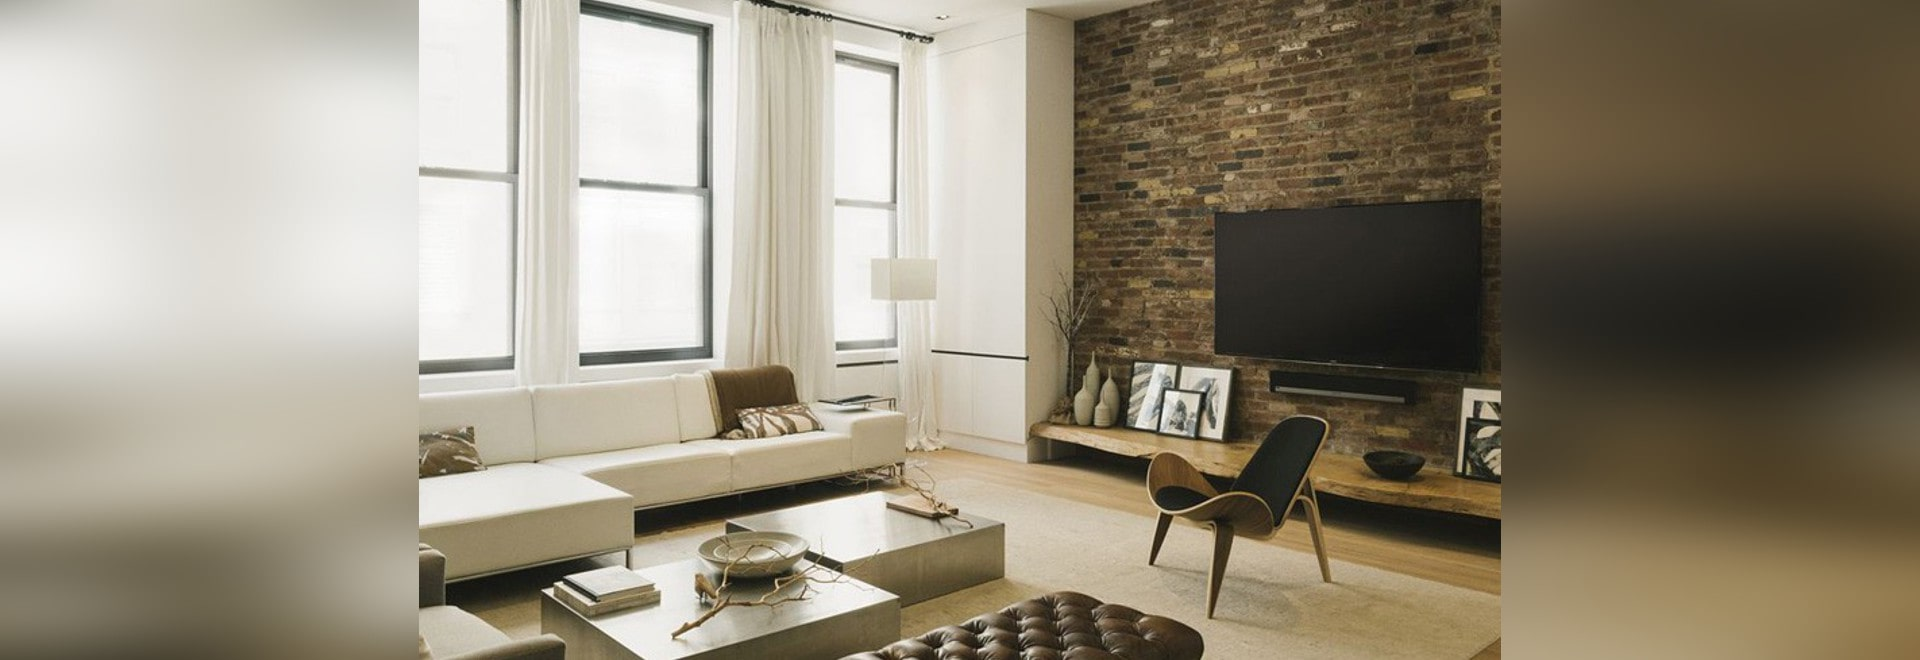 Greenwich Village Apartment By RAAD Studio